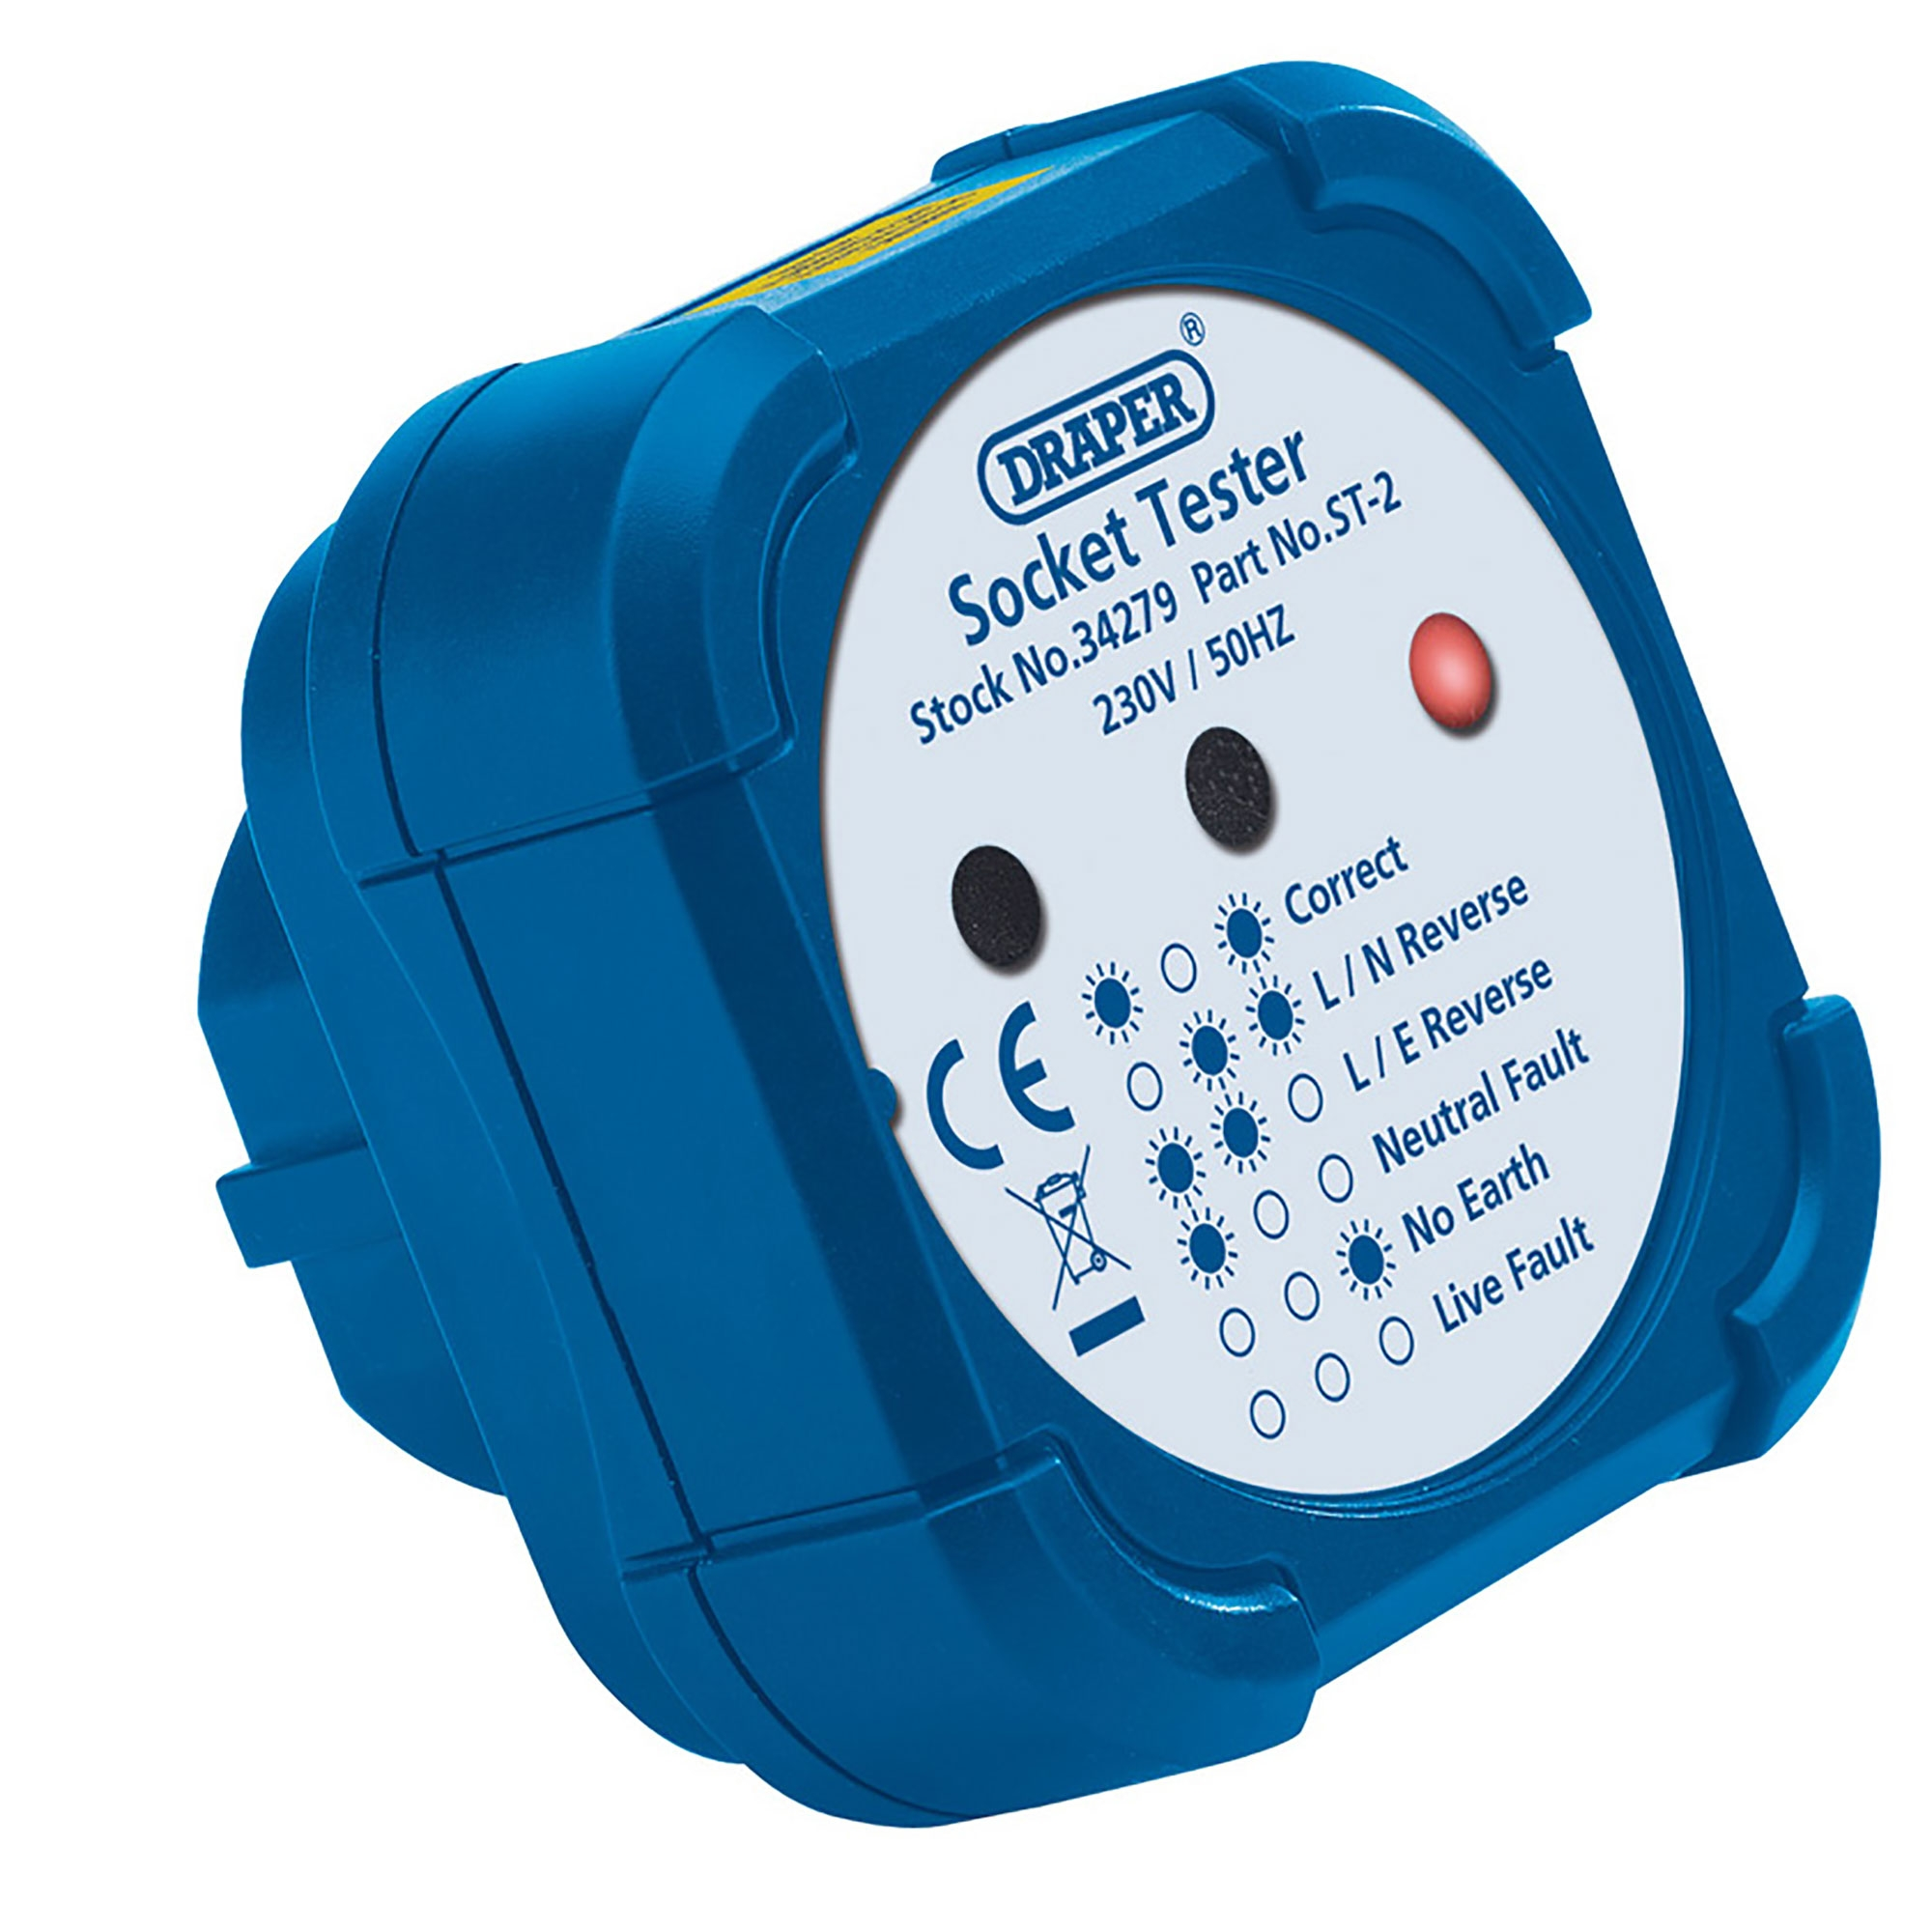 Next Working Day to UK Draper 13A Socket Tester 34279